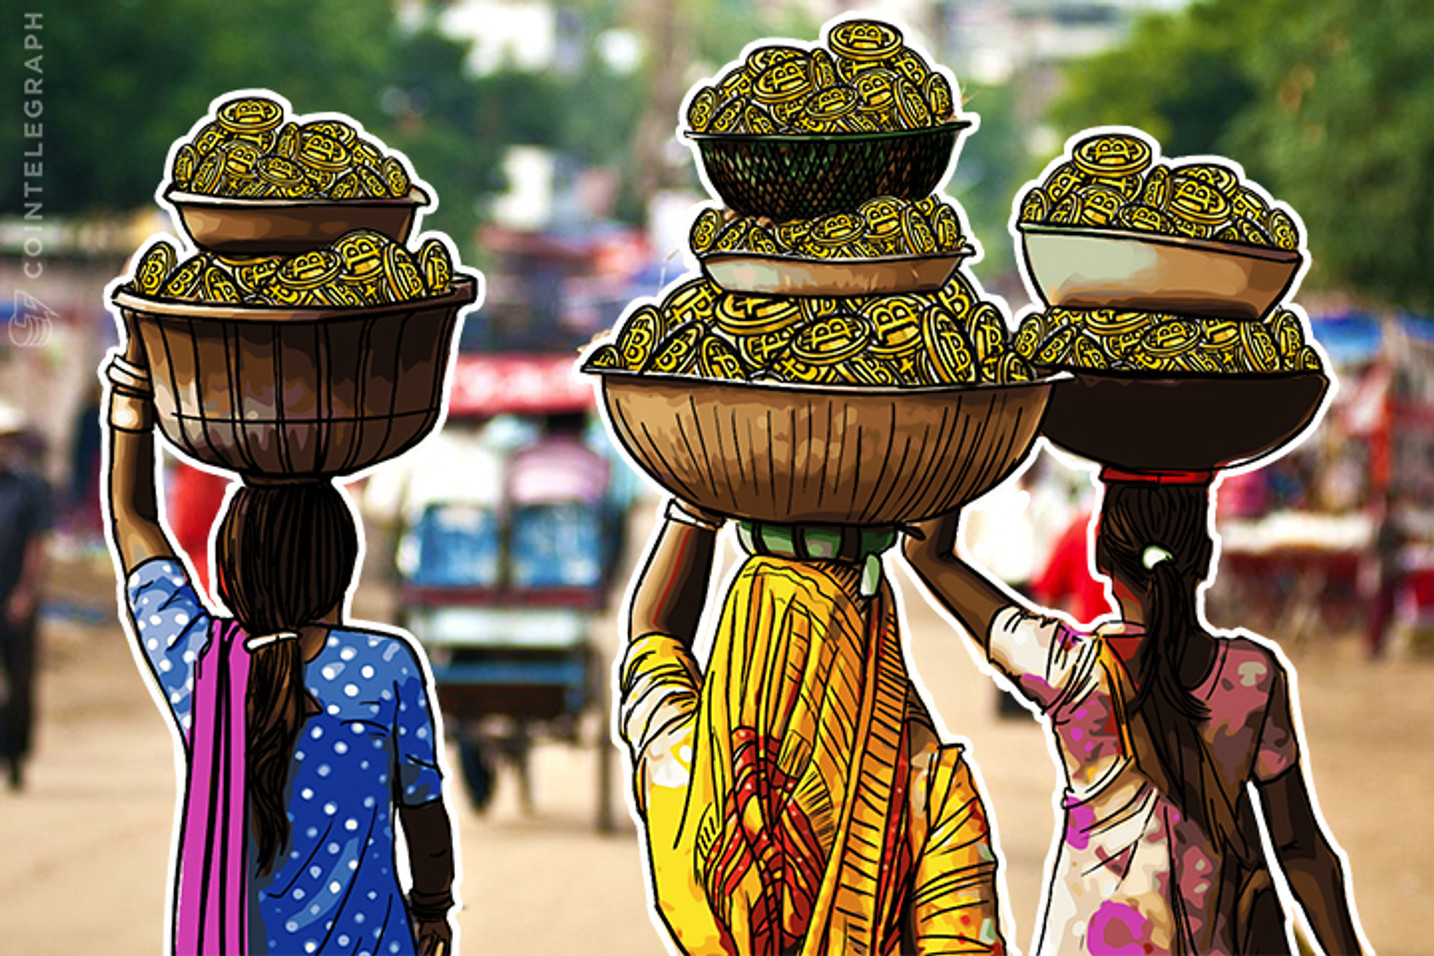 Bitcoin Operator Coinsecure Heats Up Indian Bitcoin Competition With $1 Mln Investment Bid